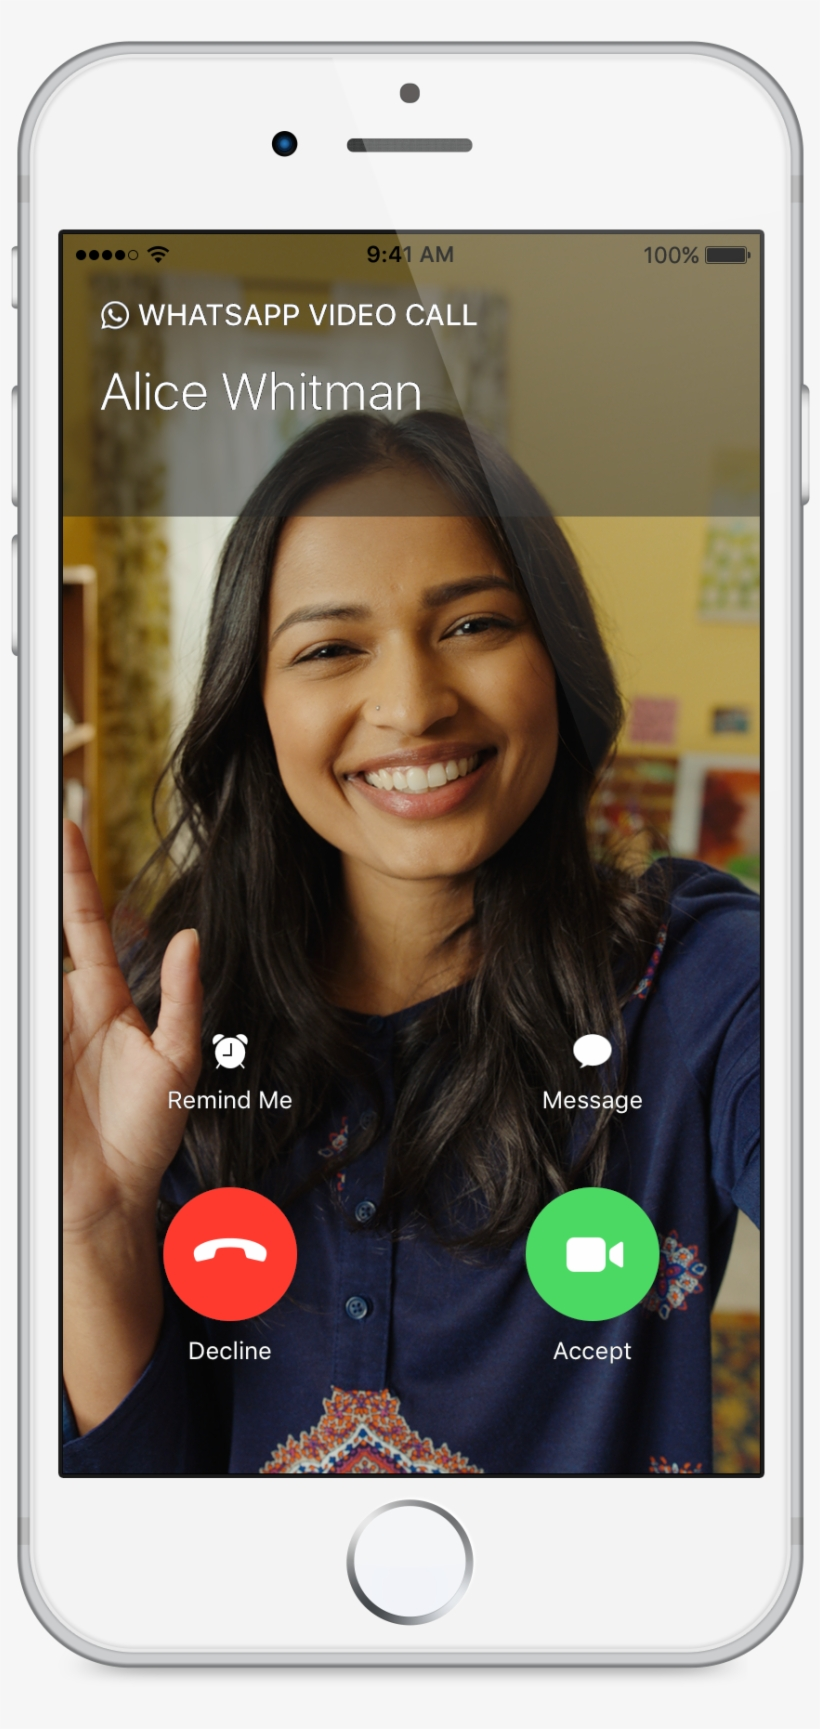 Whatsapp Best Video Call App Free Transparent Png Download Pngkey